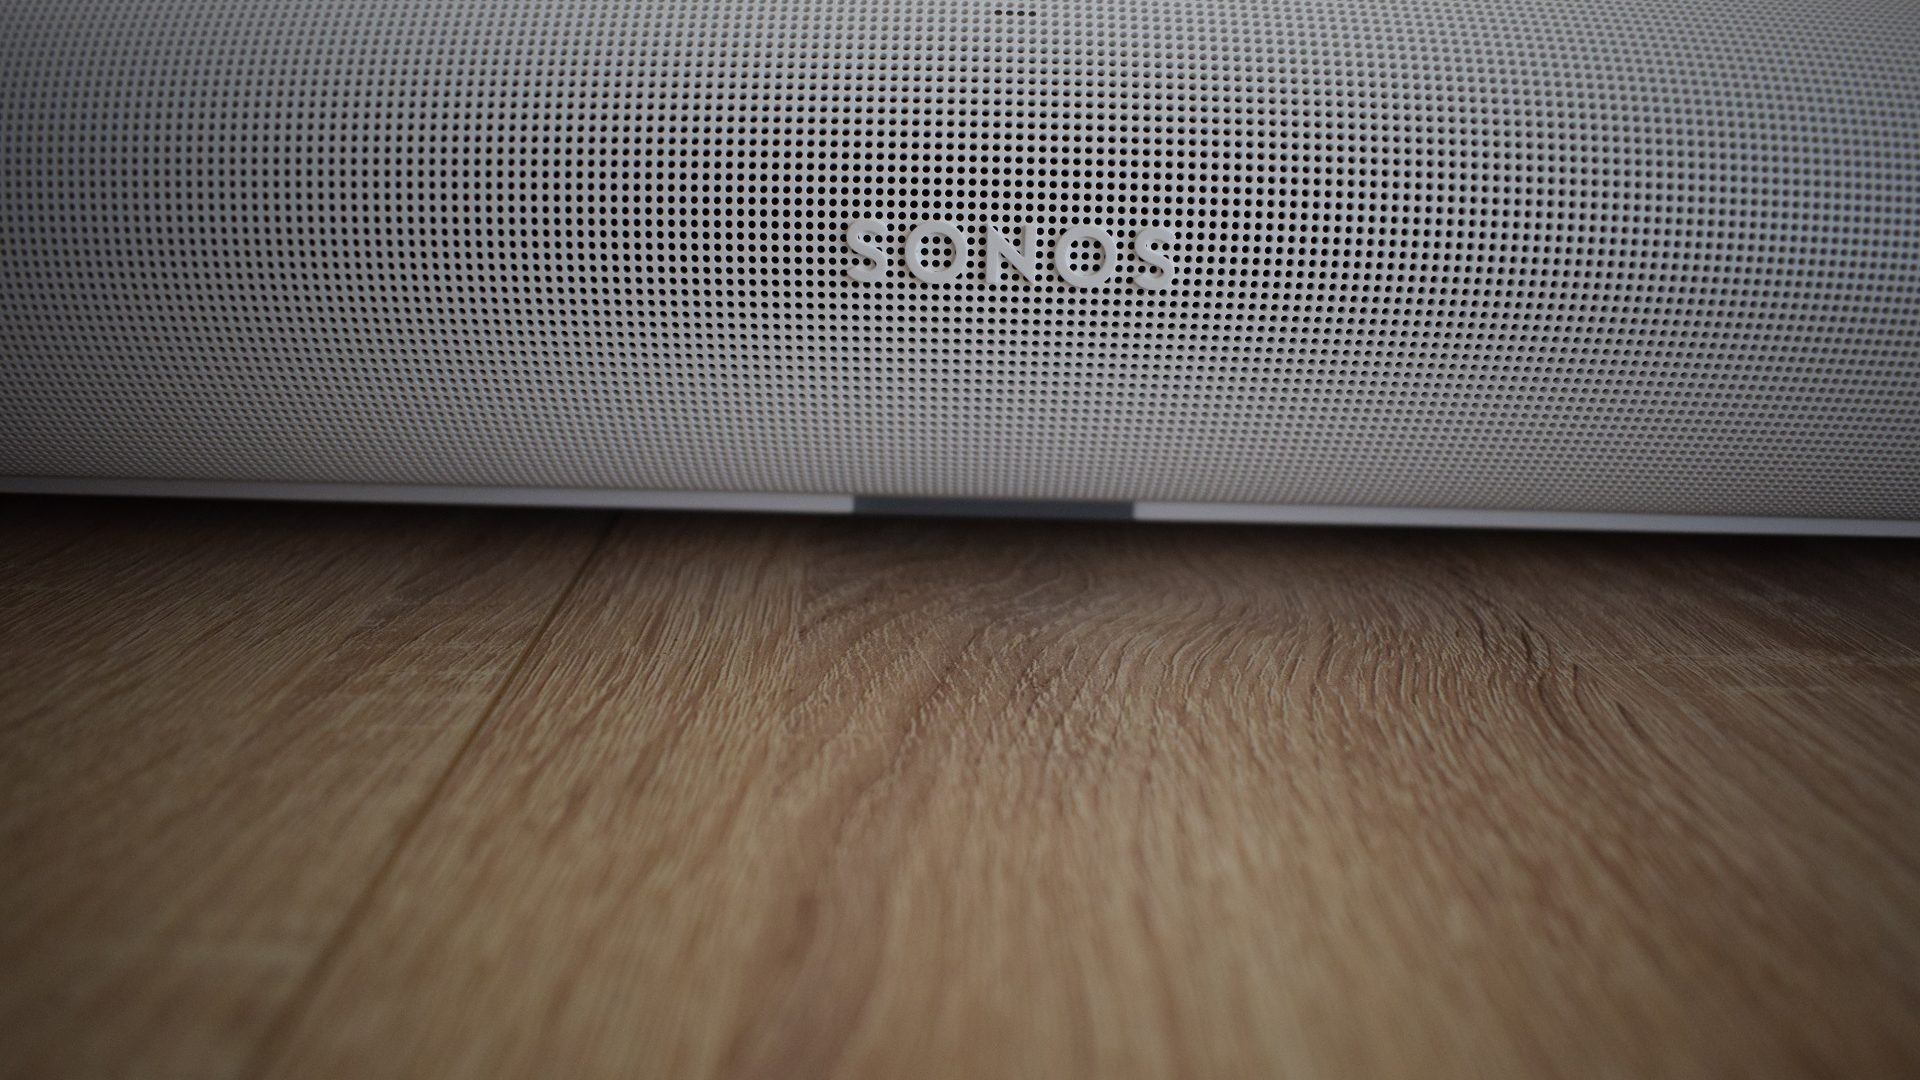 sonos arc game it